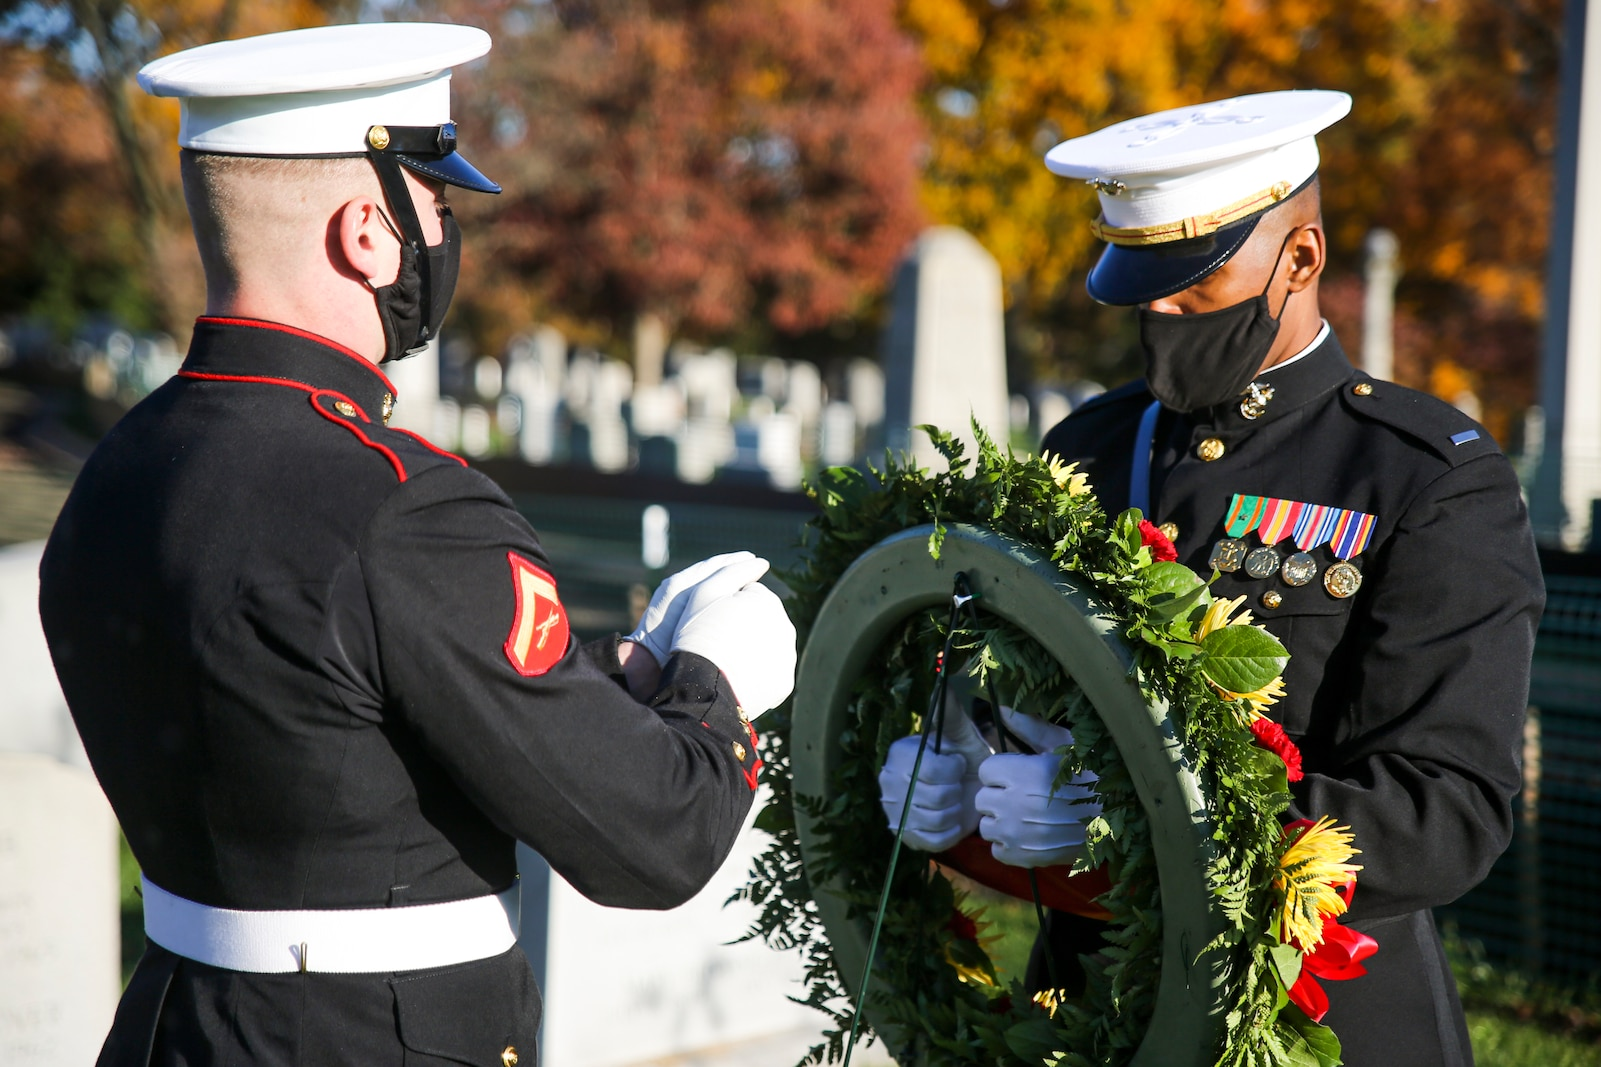 These ceremonies are held to celebrate those Marines' love and devotion to their Corps and Country, and to celebrate the Marine Corps birthday.